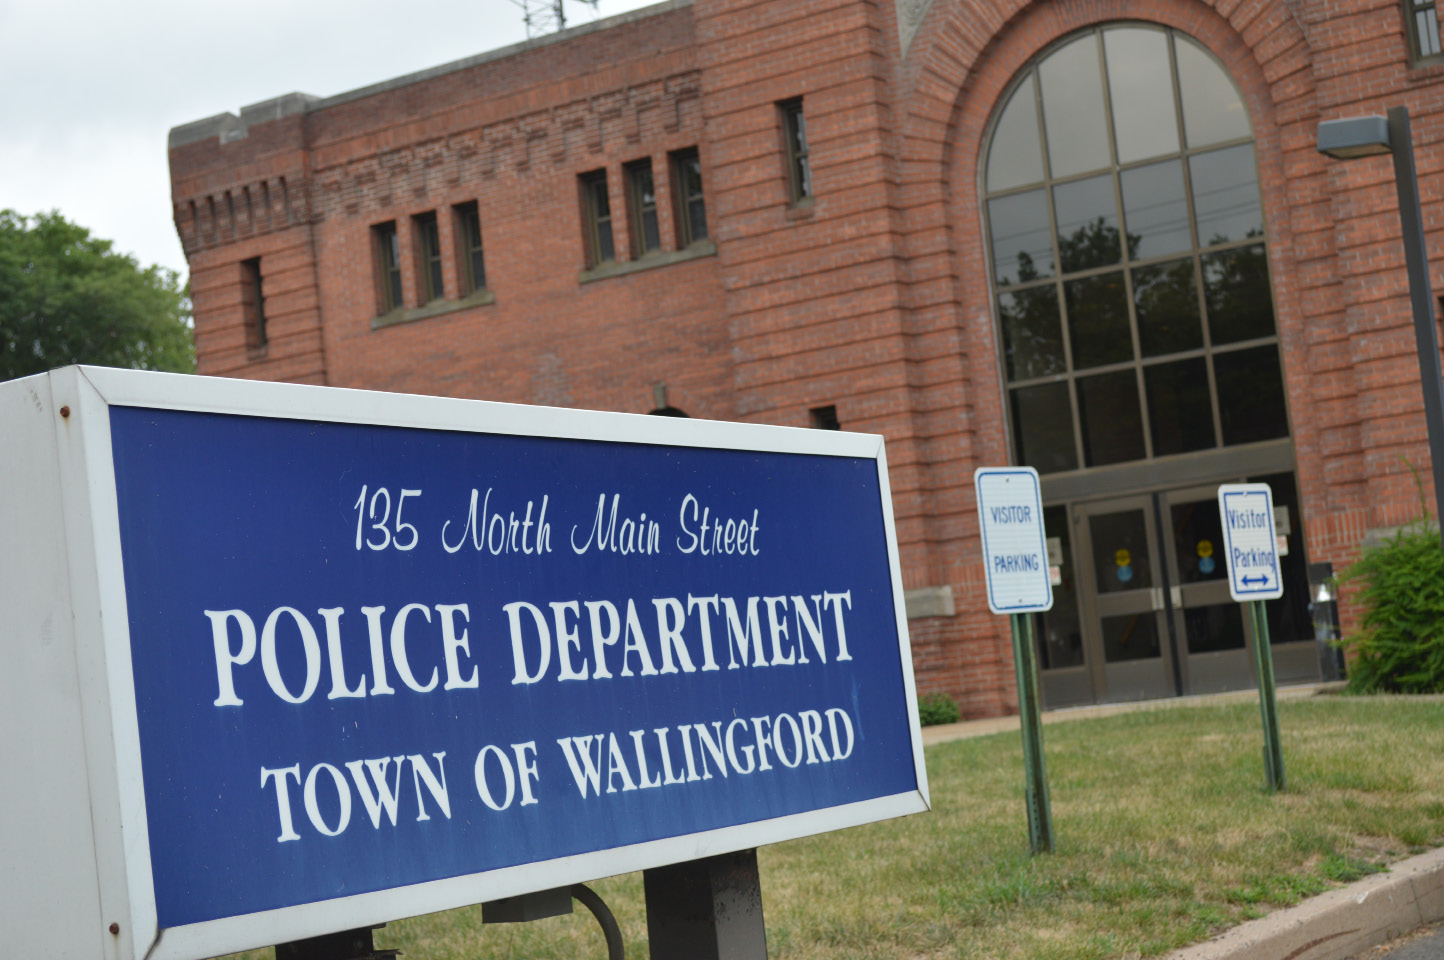 The police department on North Main Street in Wallingford. | Clare Dignan, Special to the Record-Journal